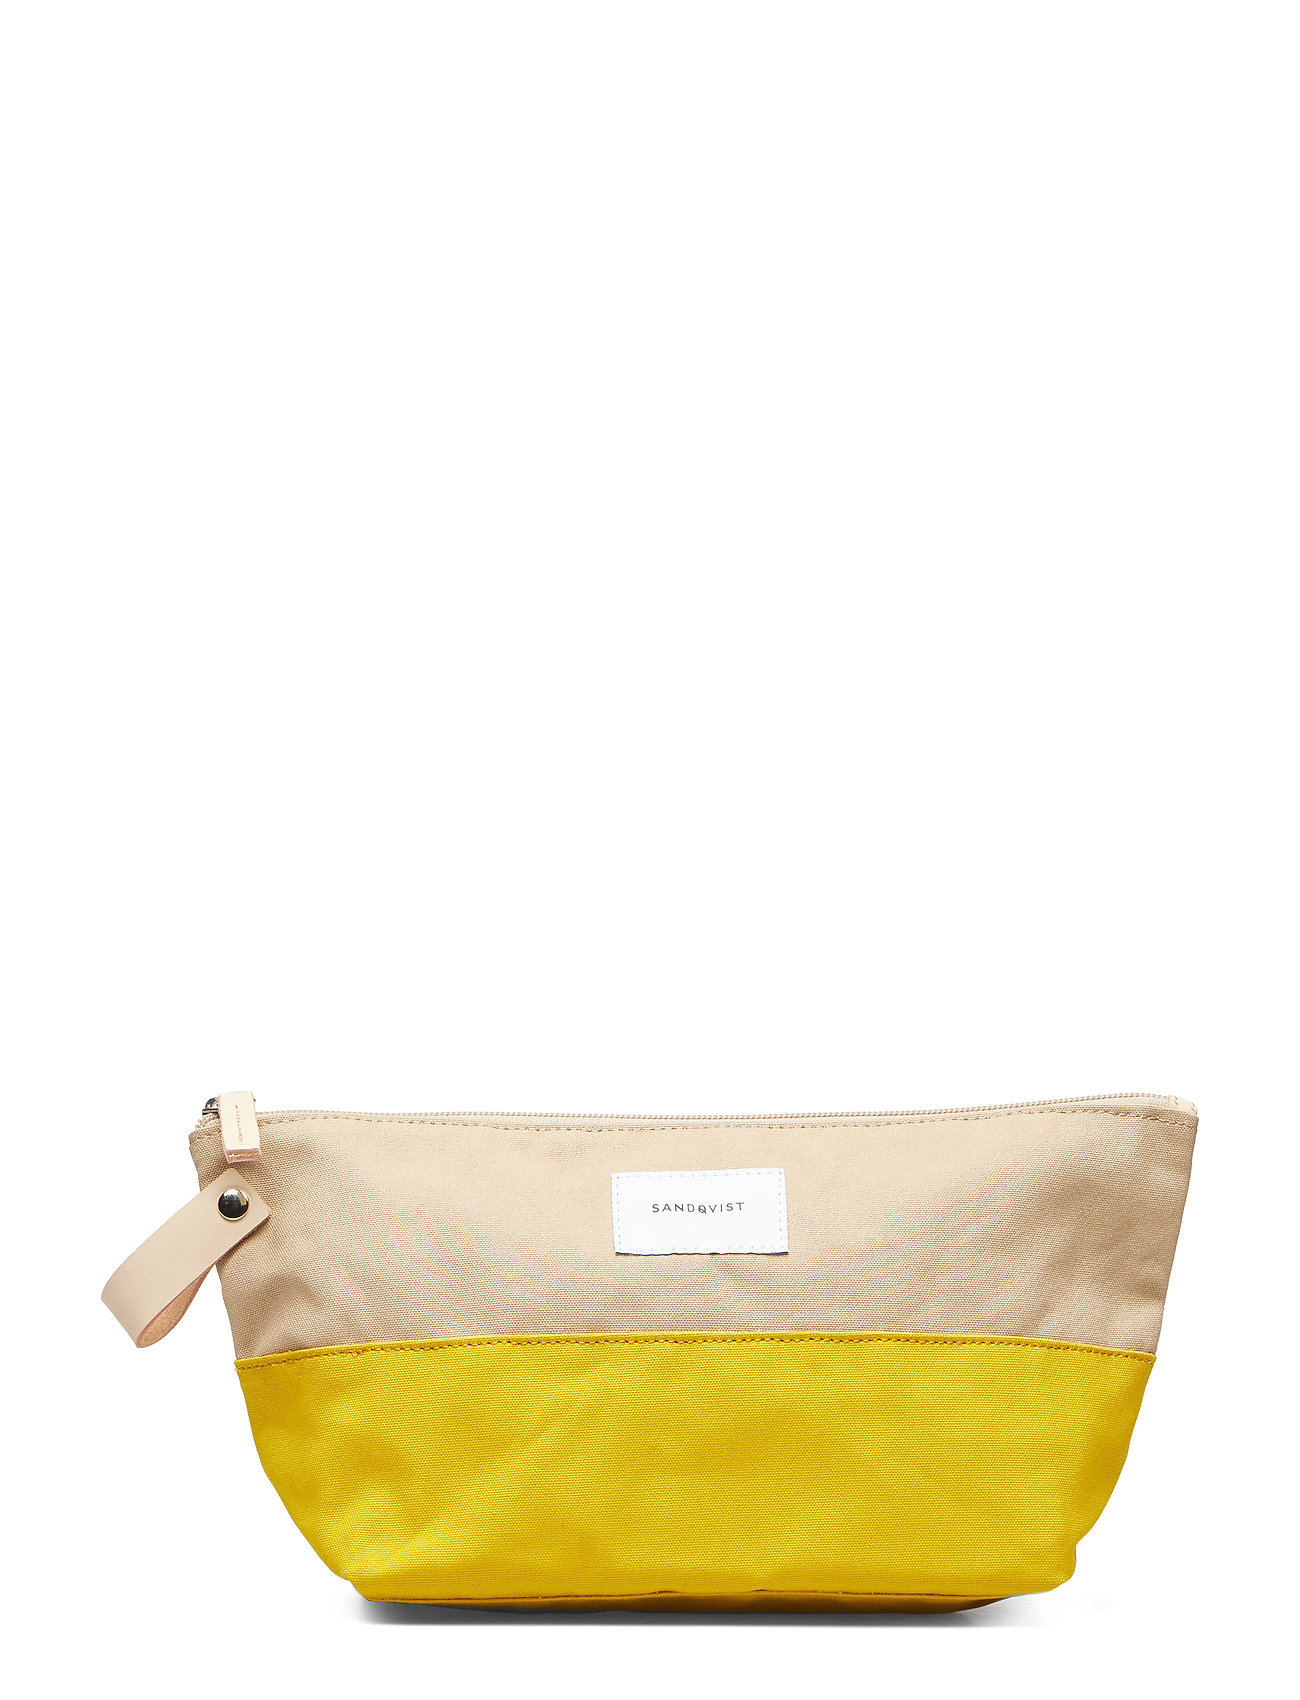 SANDQVIST CLEO - MULTI YELLOW / BEIGE WITH NATURAL LEATHER